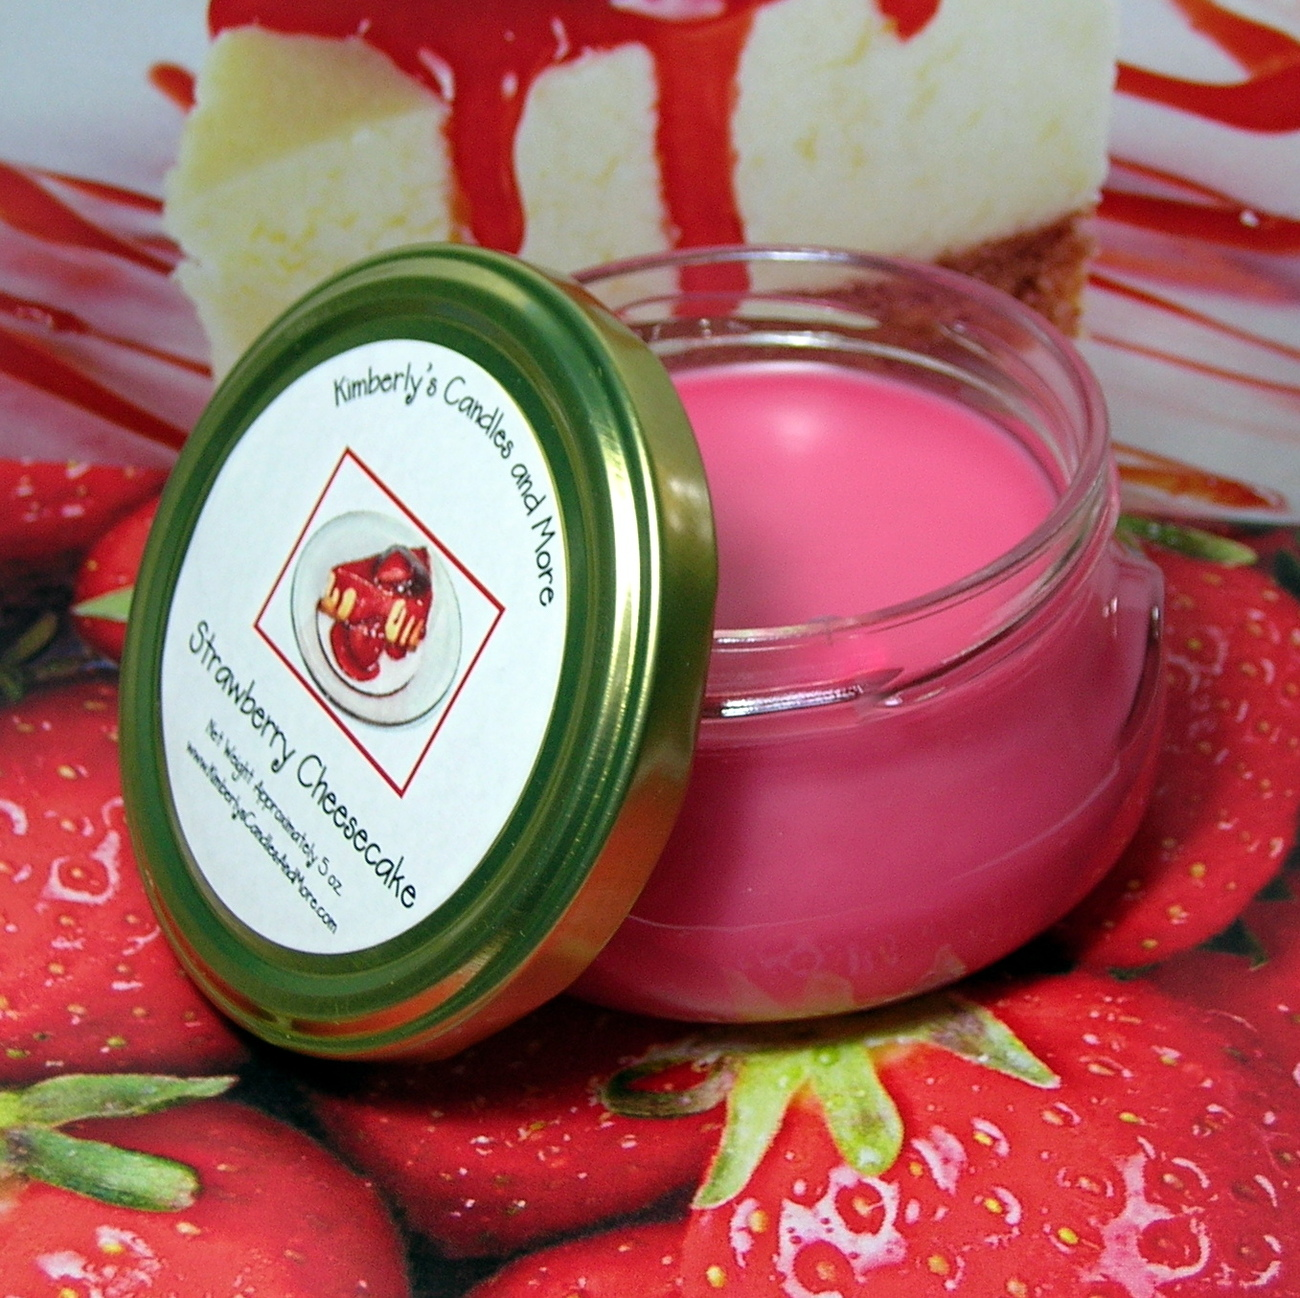 Strawberry Cheesecake 6 oz. Tureen Jar Wickless Candle